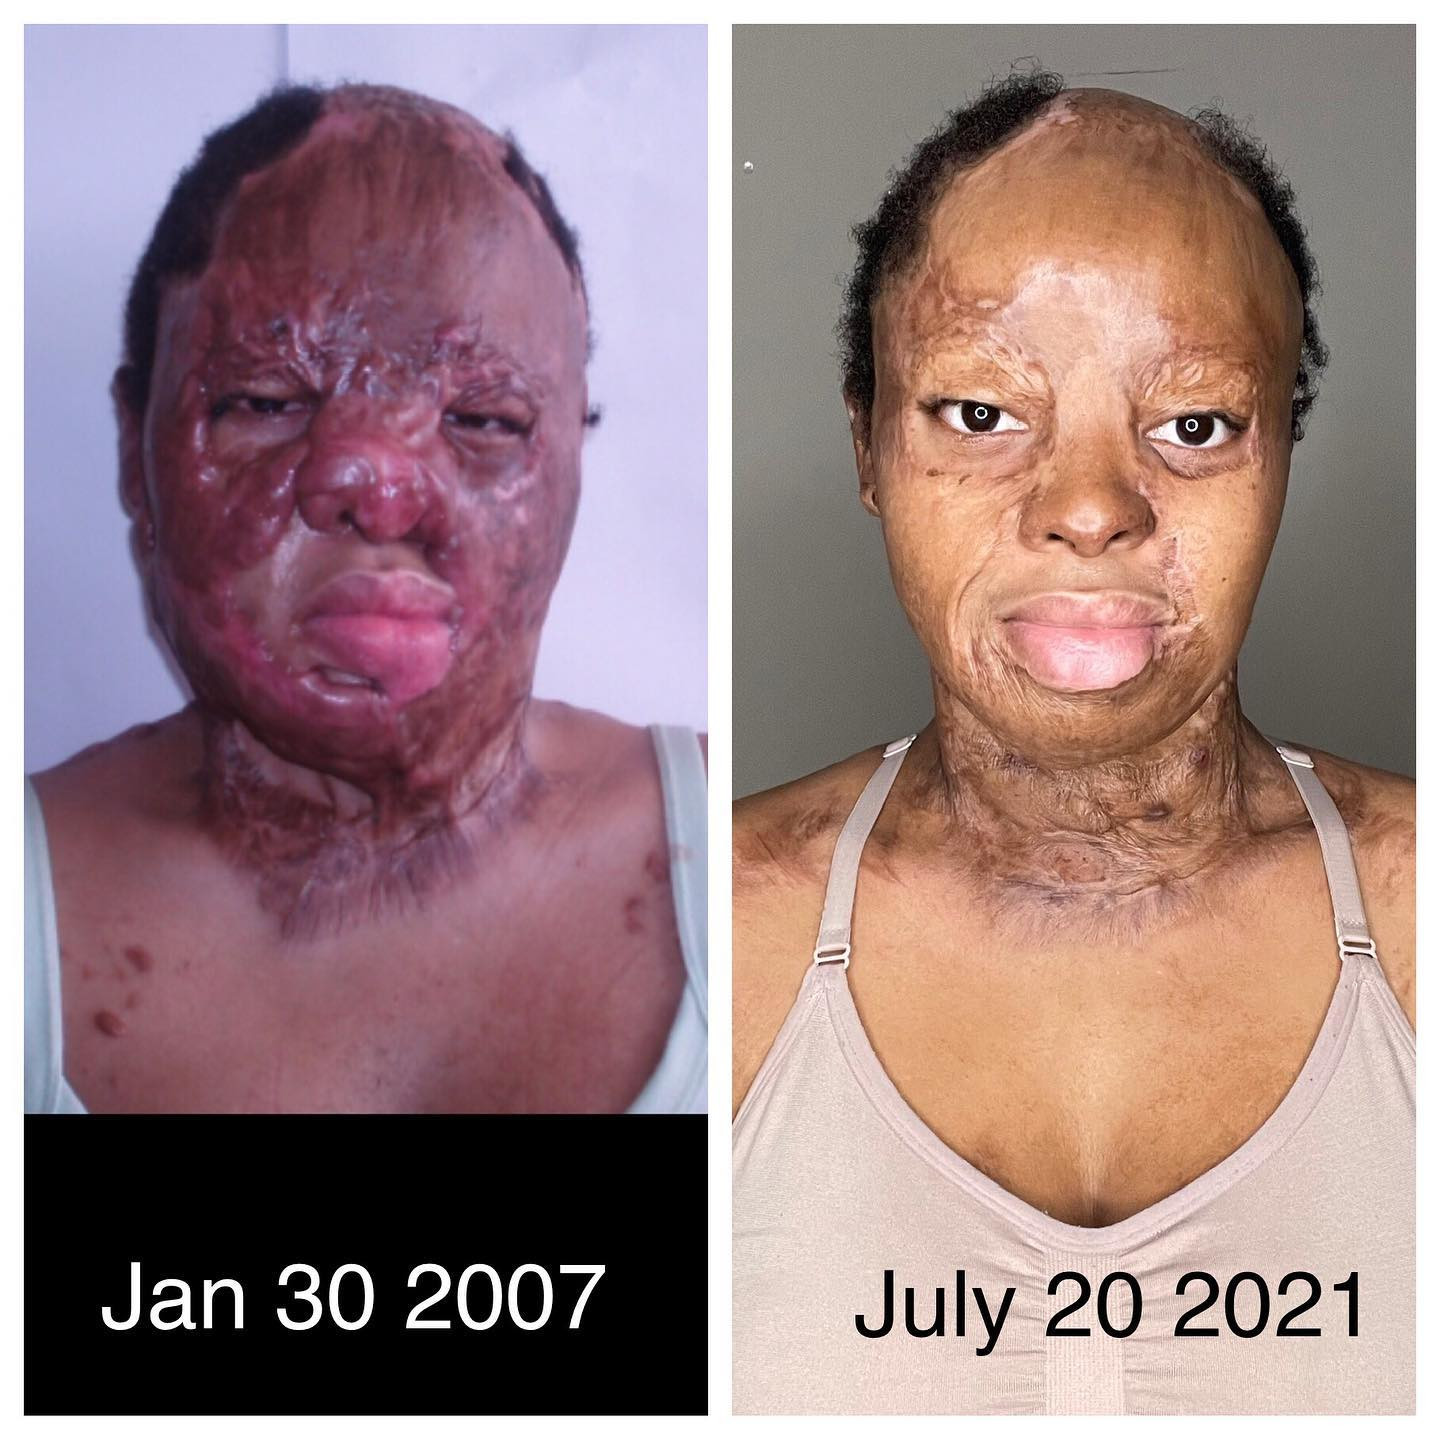 I?m grateful I lived long enough to see it - Plane crash survivor, Kechi Okwuchi bares her facial scars as she shares recovery journey